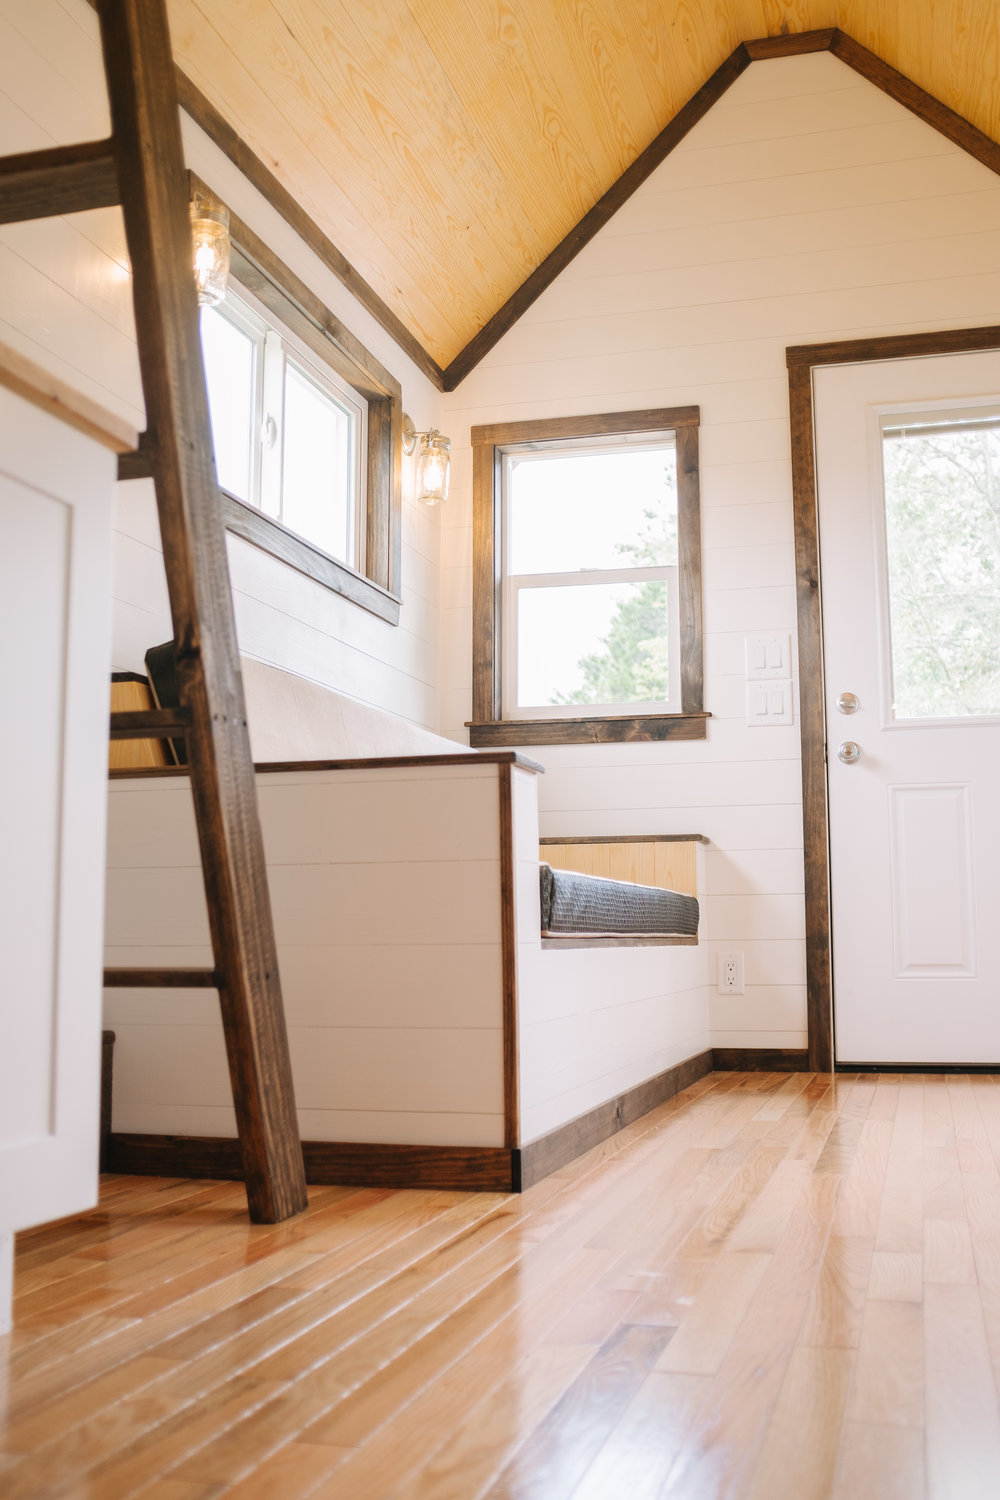 The Acadia by Wind River Tiny Homes - tiny house, ship lap, custom storage couch, oak hardwood flooring, loft ladder